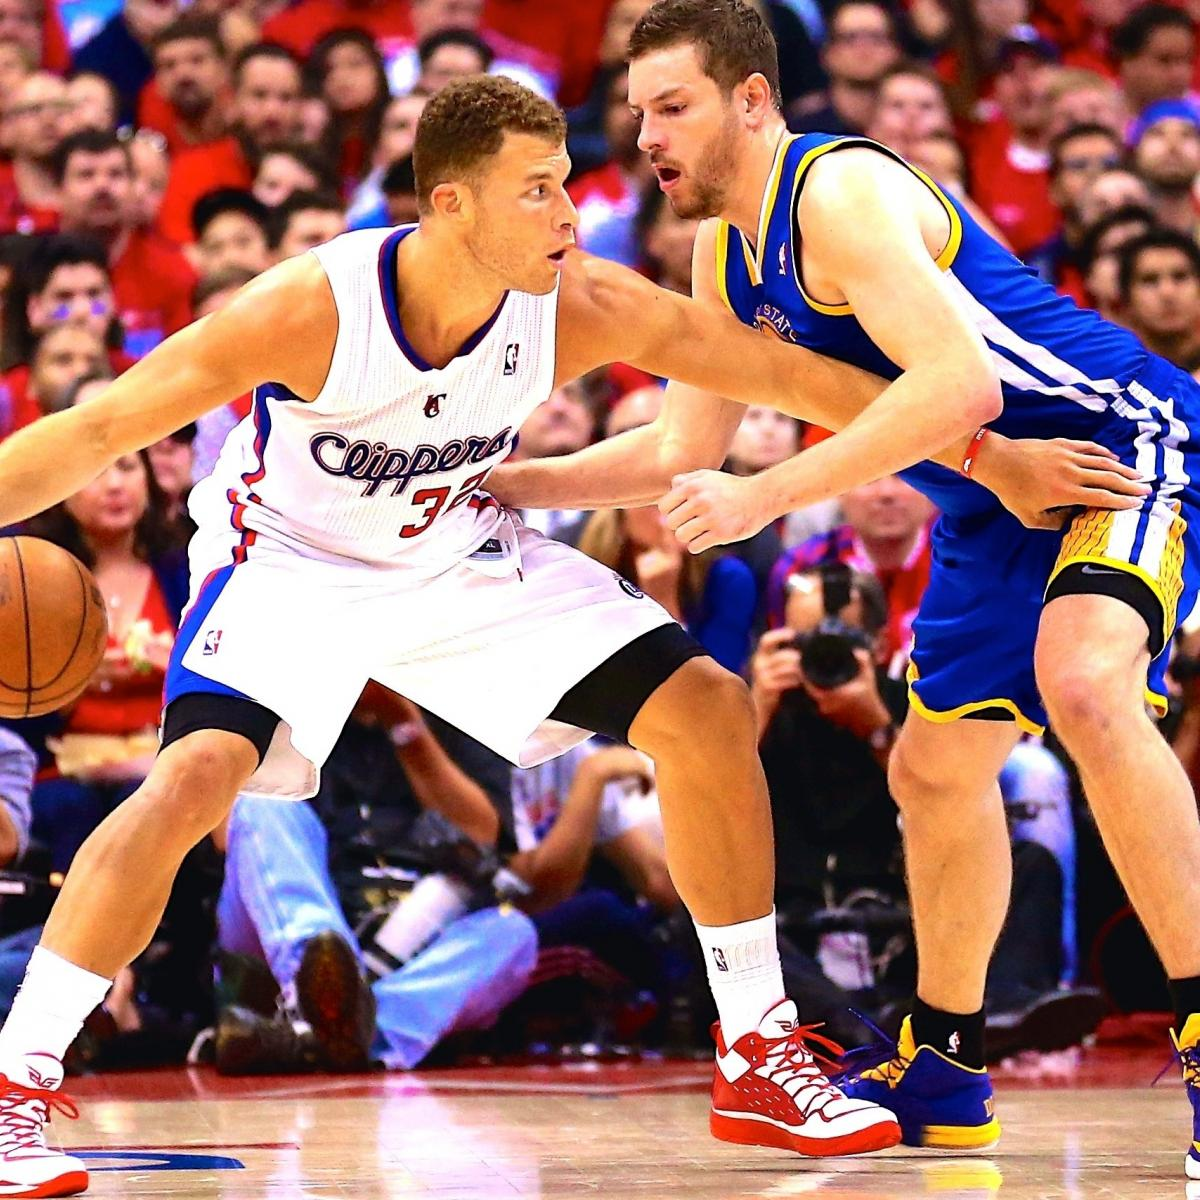 Warriors Vs. Clippers: Game 2 Score And Twitter Reaction